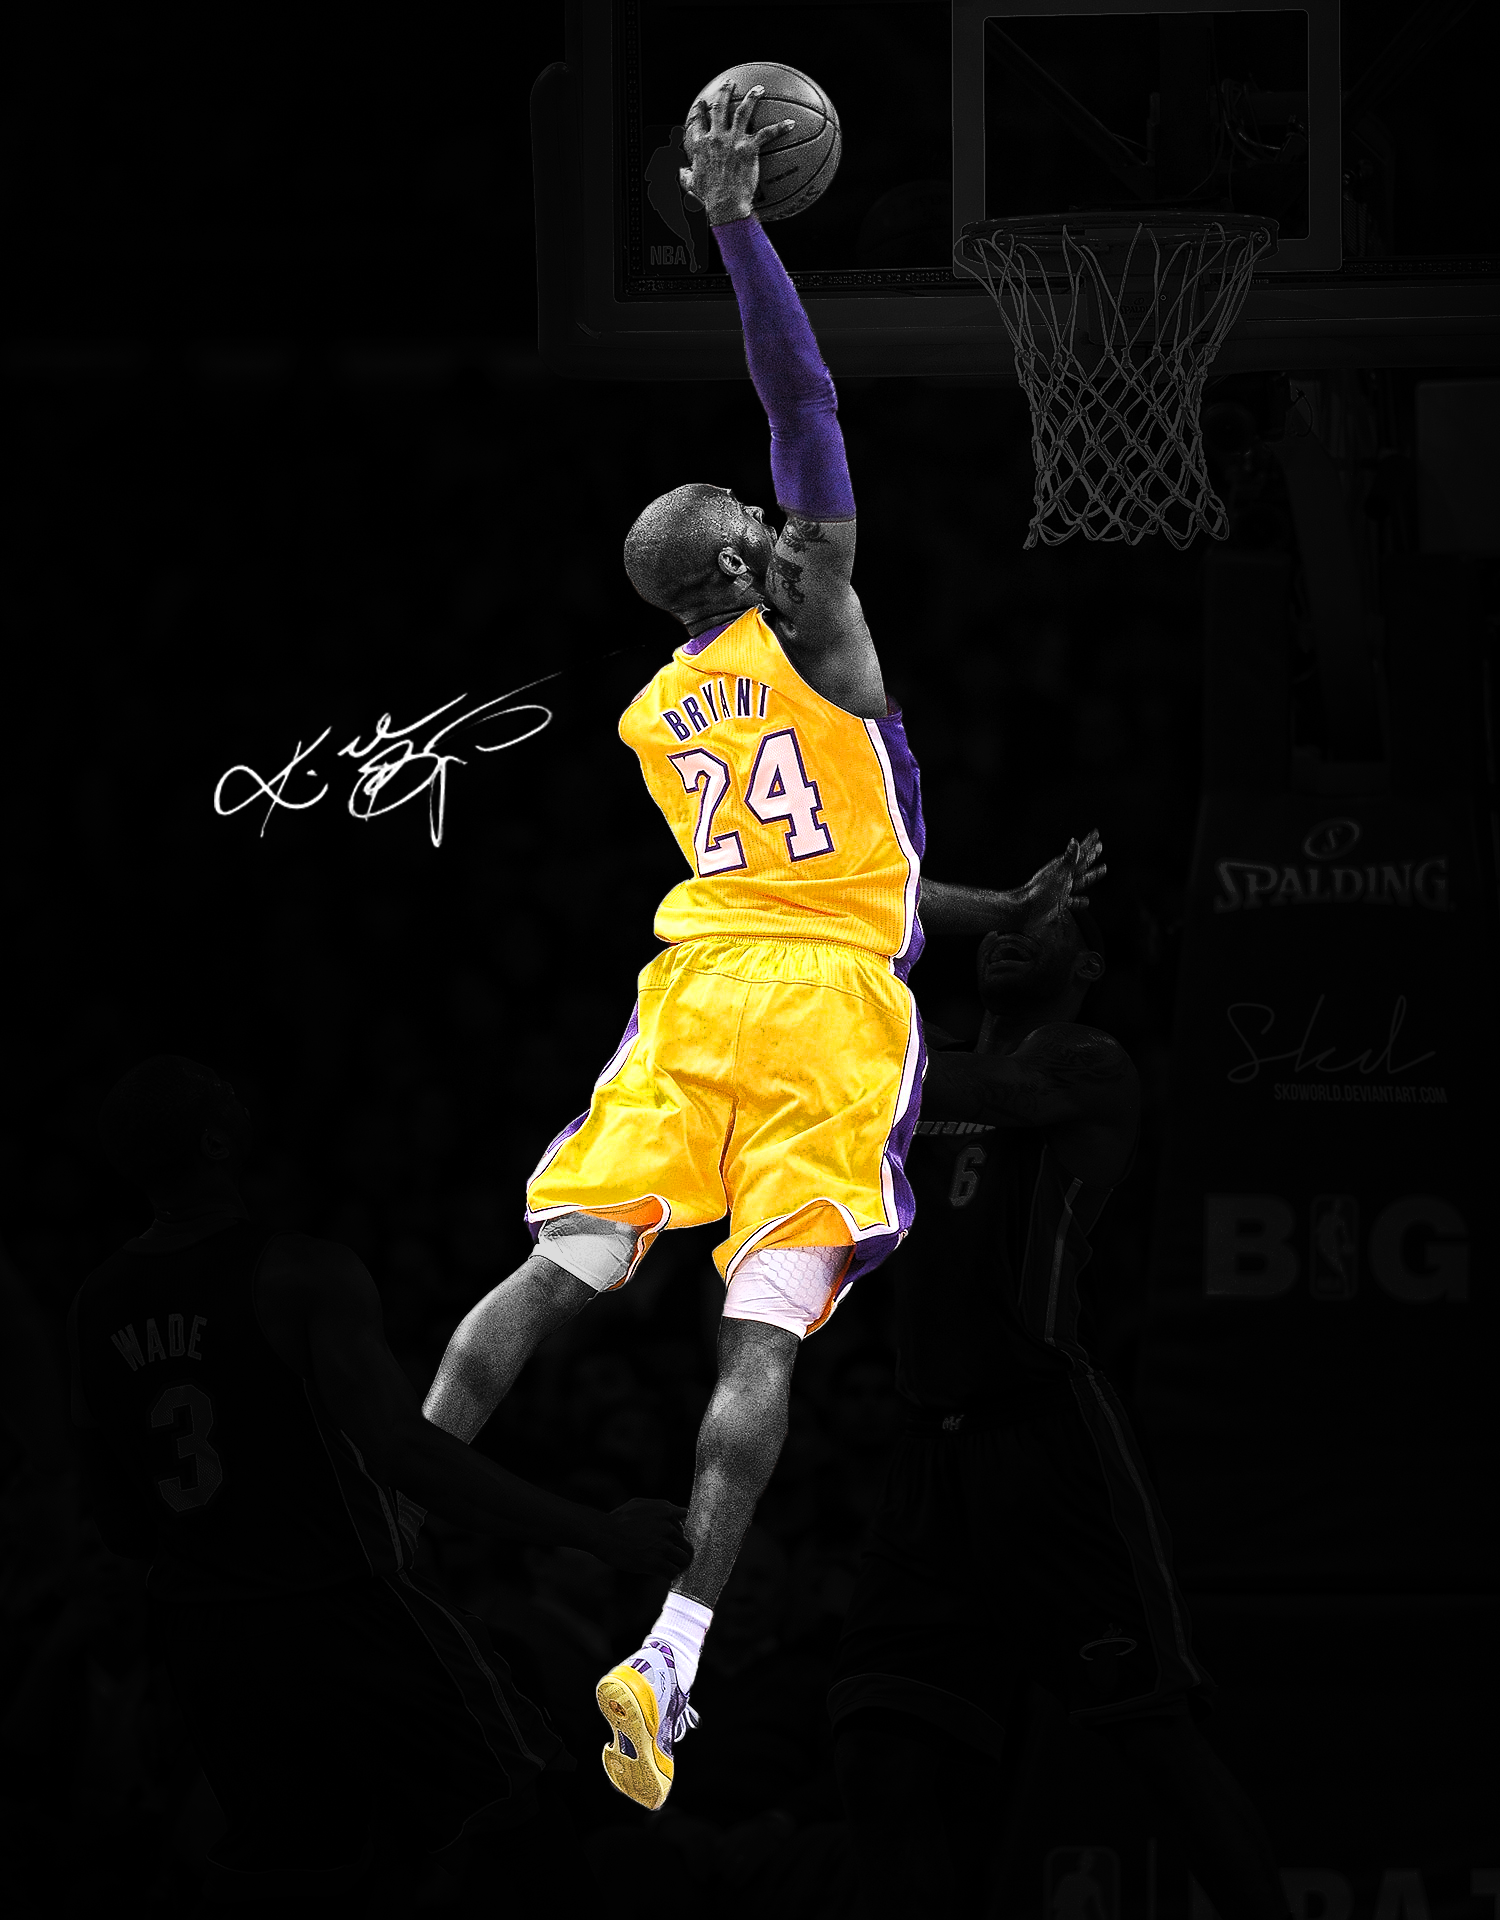 Kobe Bryant Dunk Wallpaper High Quality Is Cool Wallpapers